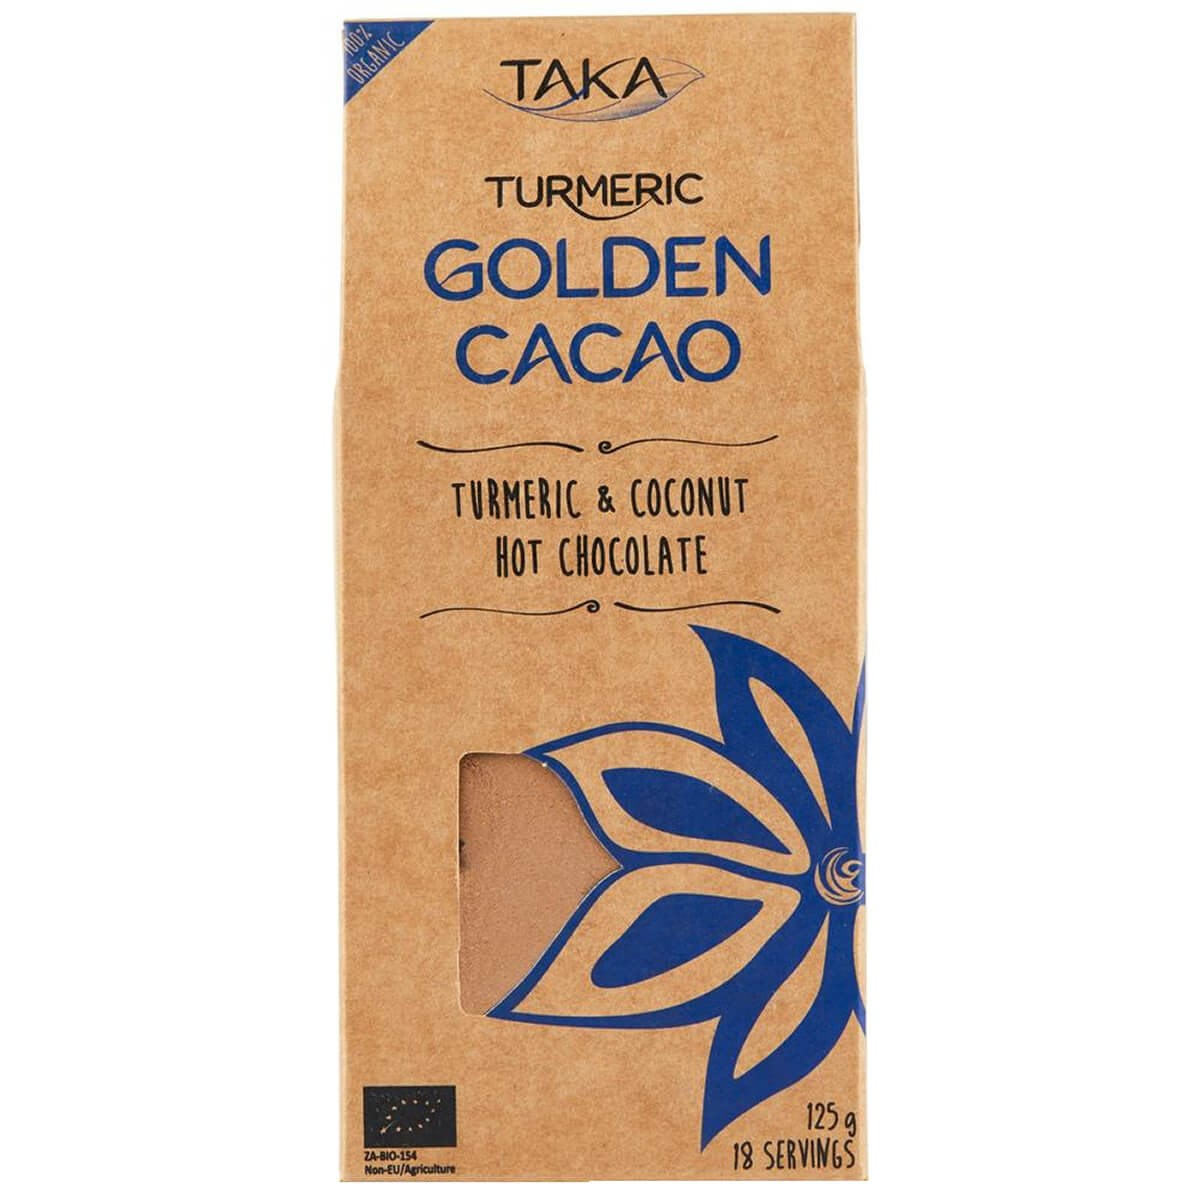 Taka Turmeric Golden Cacao Turmeric & Coconut Hot Chocolate